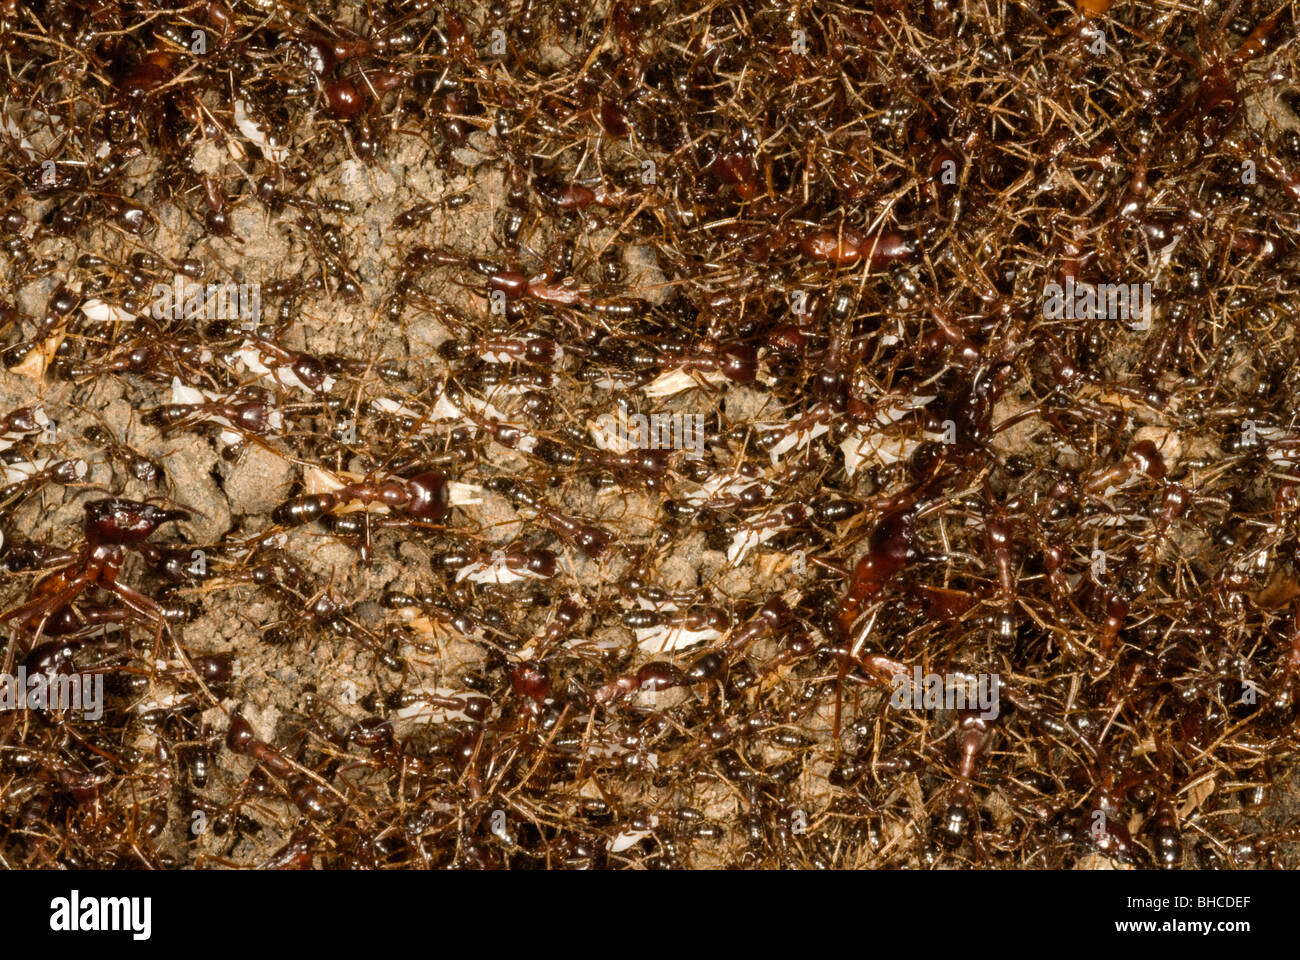 Driver ants in a moving column, photographed in Tanzania, Africa. - Stock Image